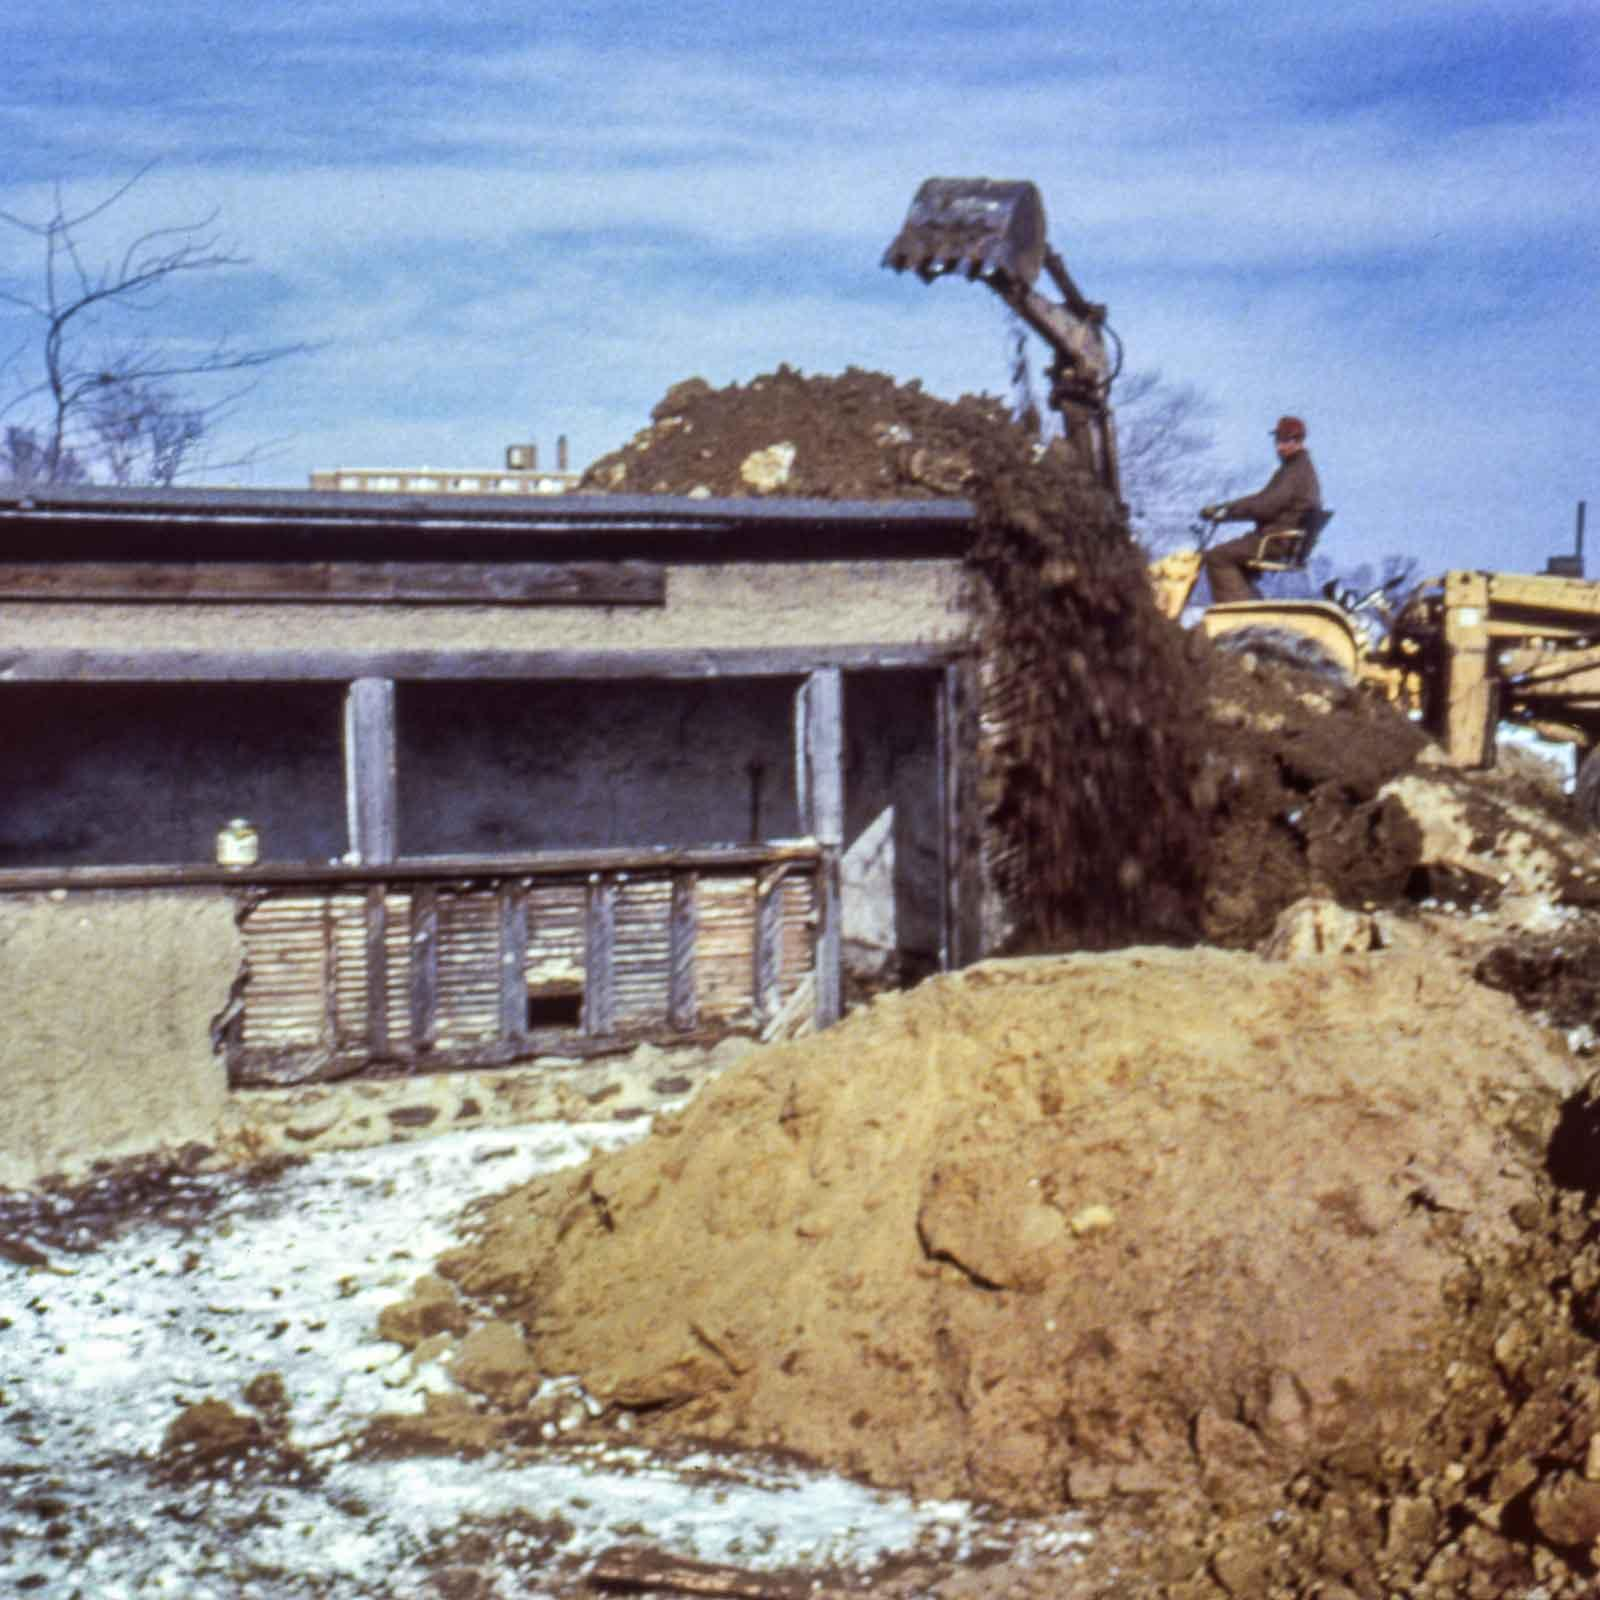 A 1970 work by Robert Smithson. Smithson piled earth atop an old woodshed on the campus of Kent State University until the center beam cracked.